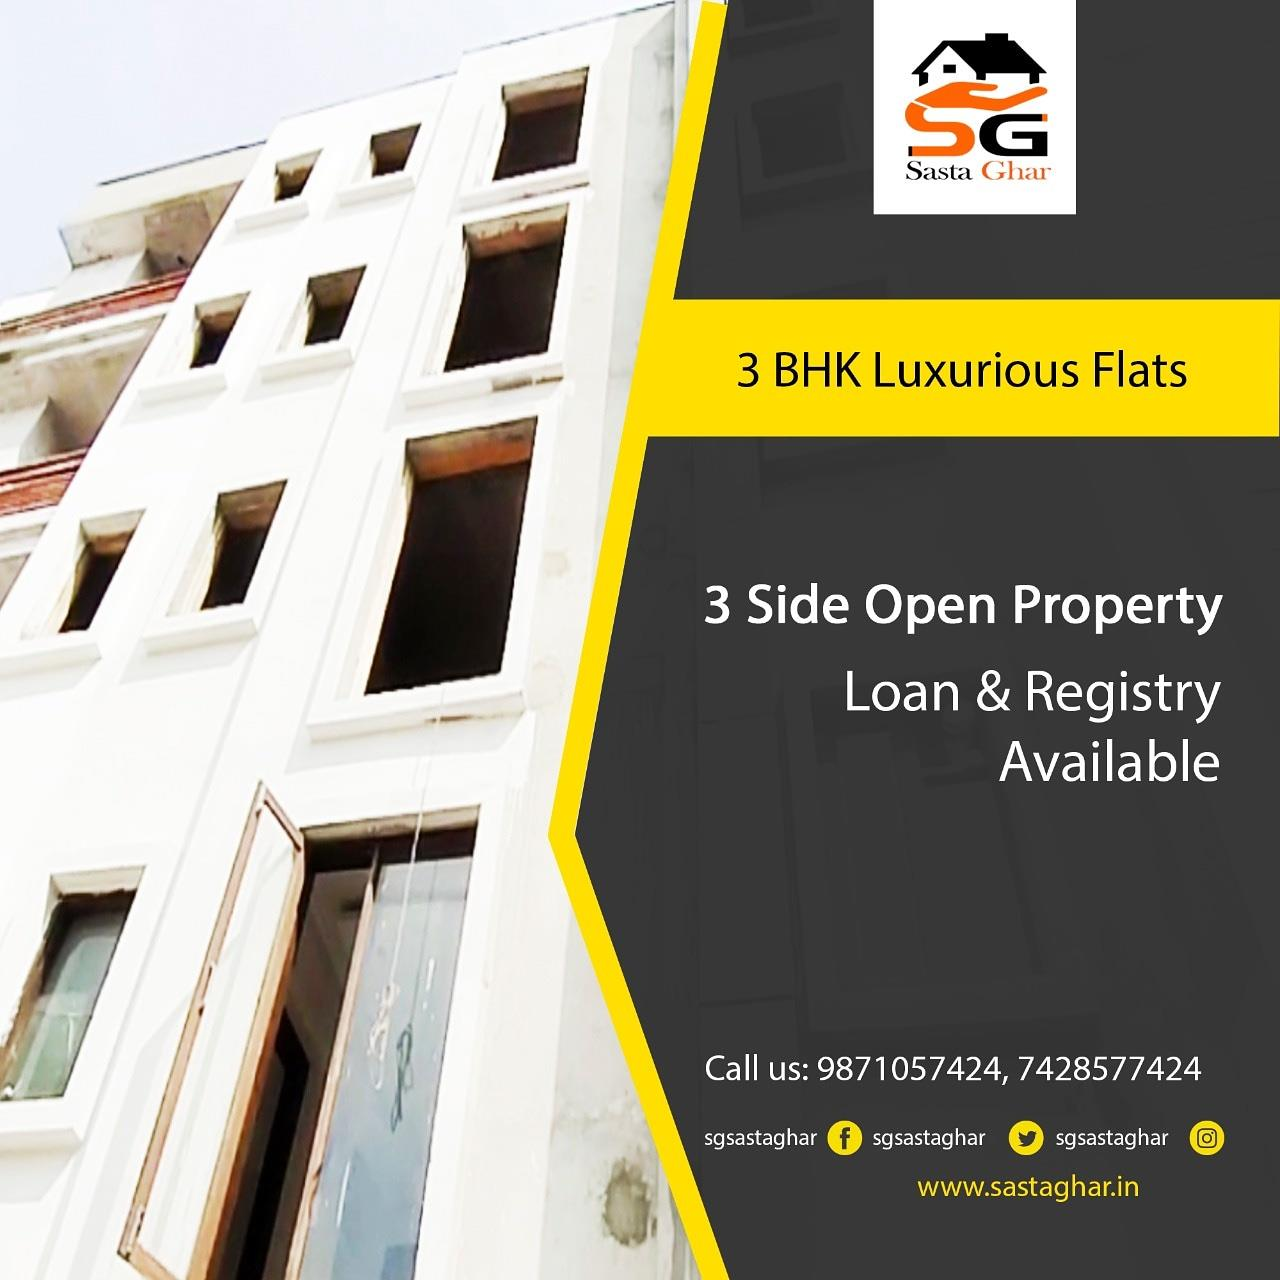 3 BHK Flats In South Delhi Image